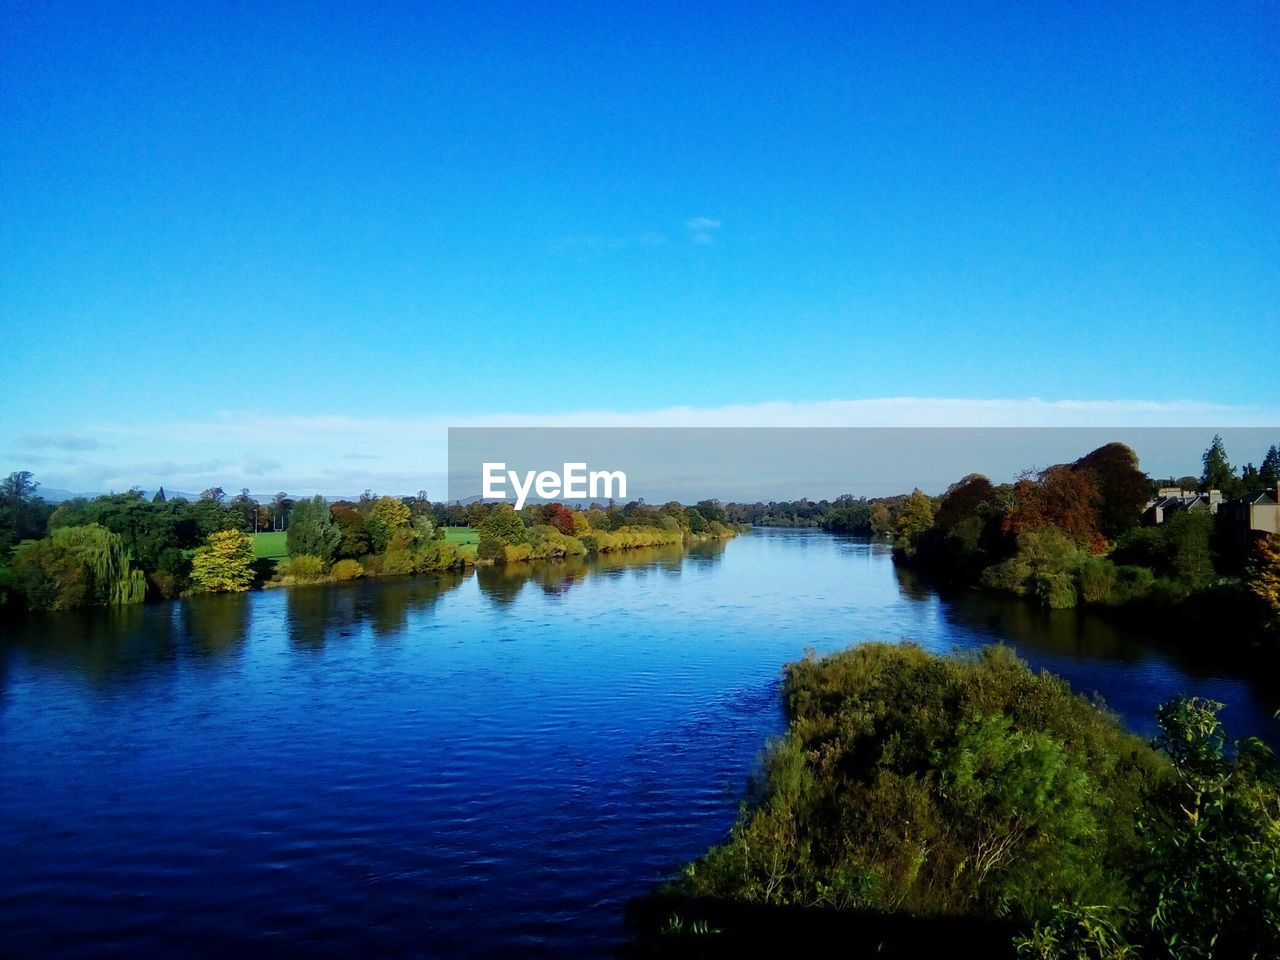 water, tranquil scene, blue, nature, scenics, tranquility, beauty in nature, river, tree, no people, holiday, outdoors, waterfront, clear sky, landscape, forest, day, sky, view into land